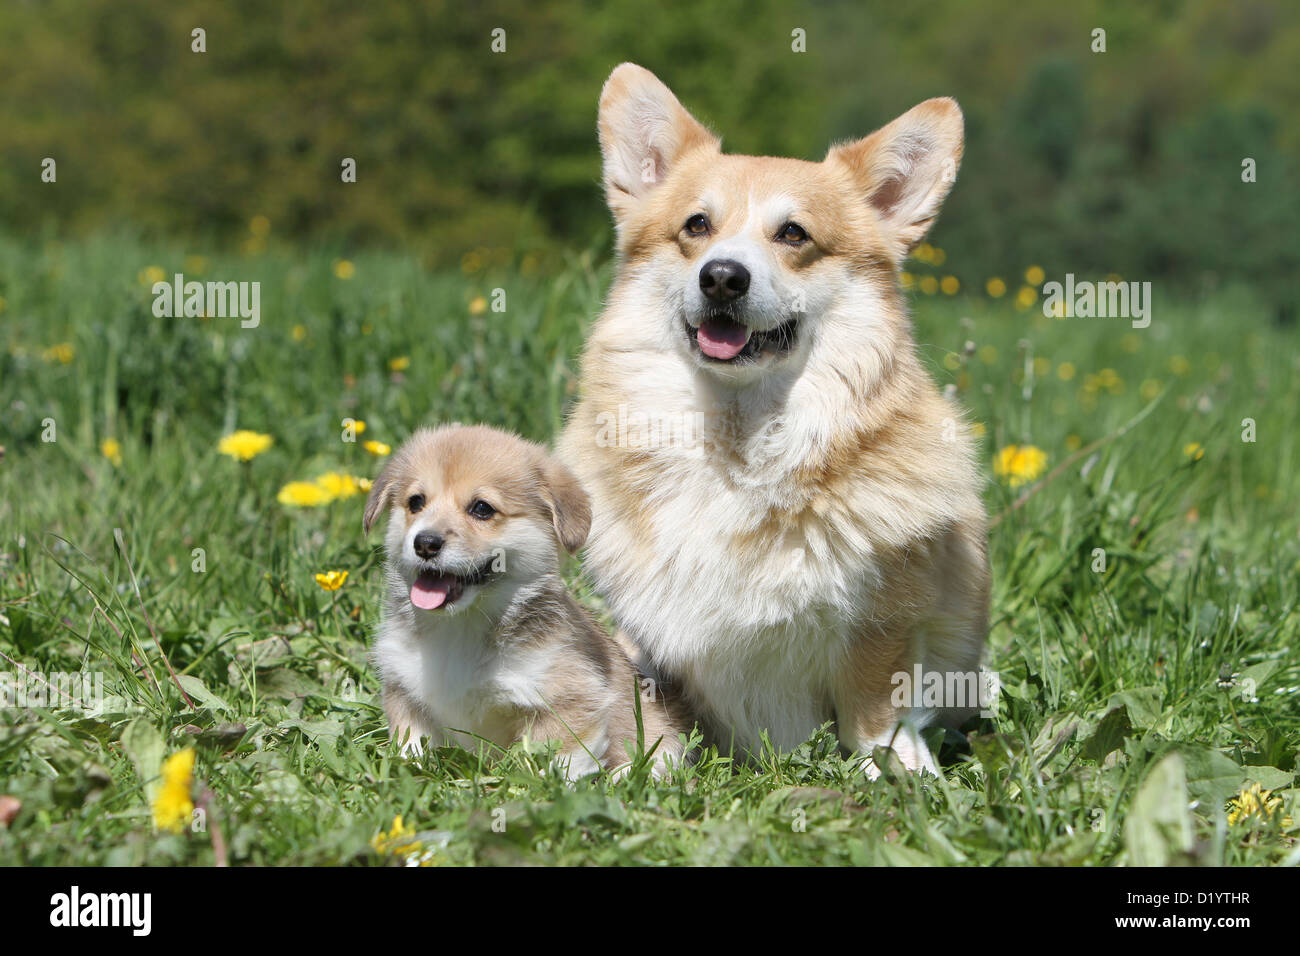 Cute Baby Puppy Pictures Wallpaper Dog Pembroke Welsh Corgi Adult And Puppy Sitting On A